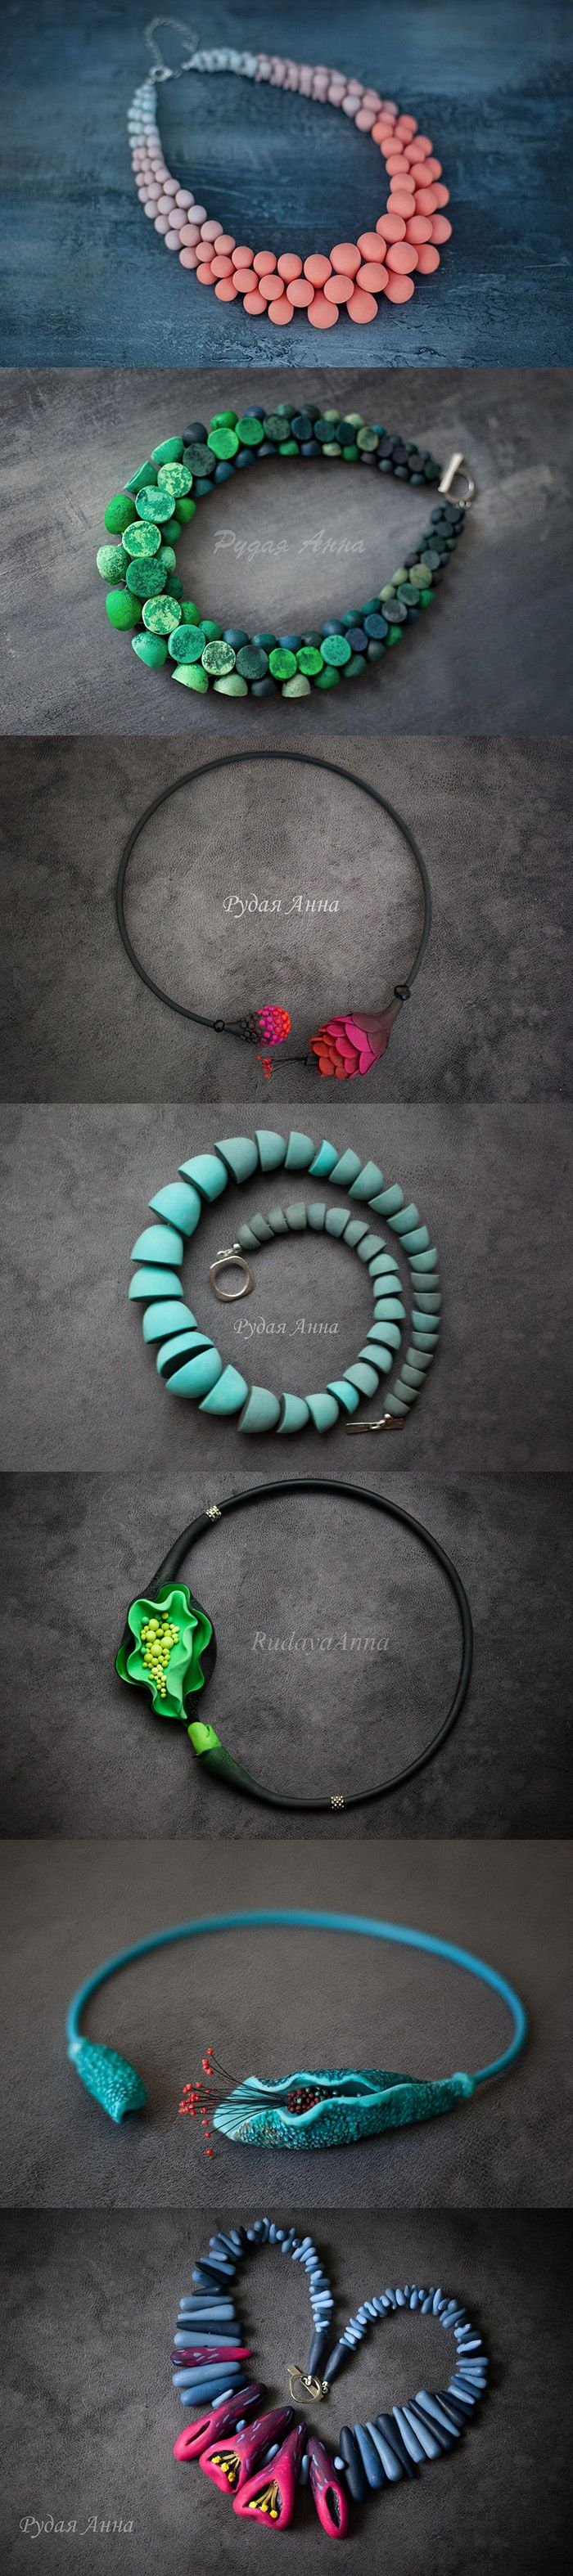 Splendid polymer clay necklaces by Anna Rudaya